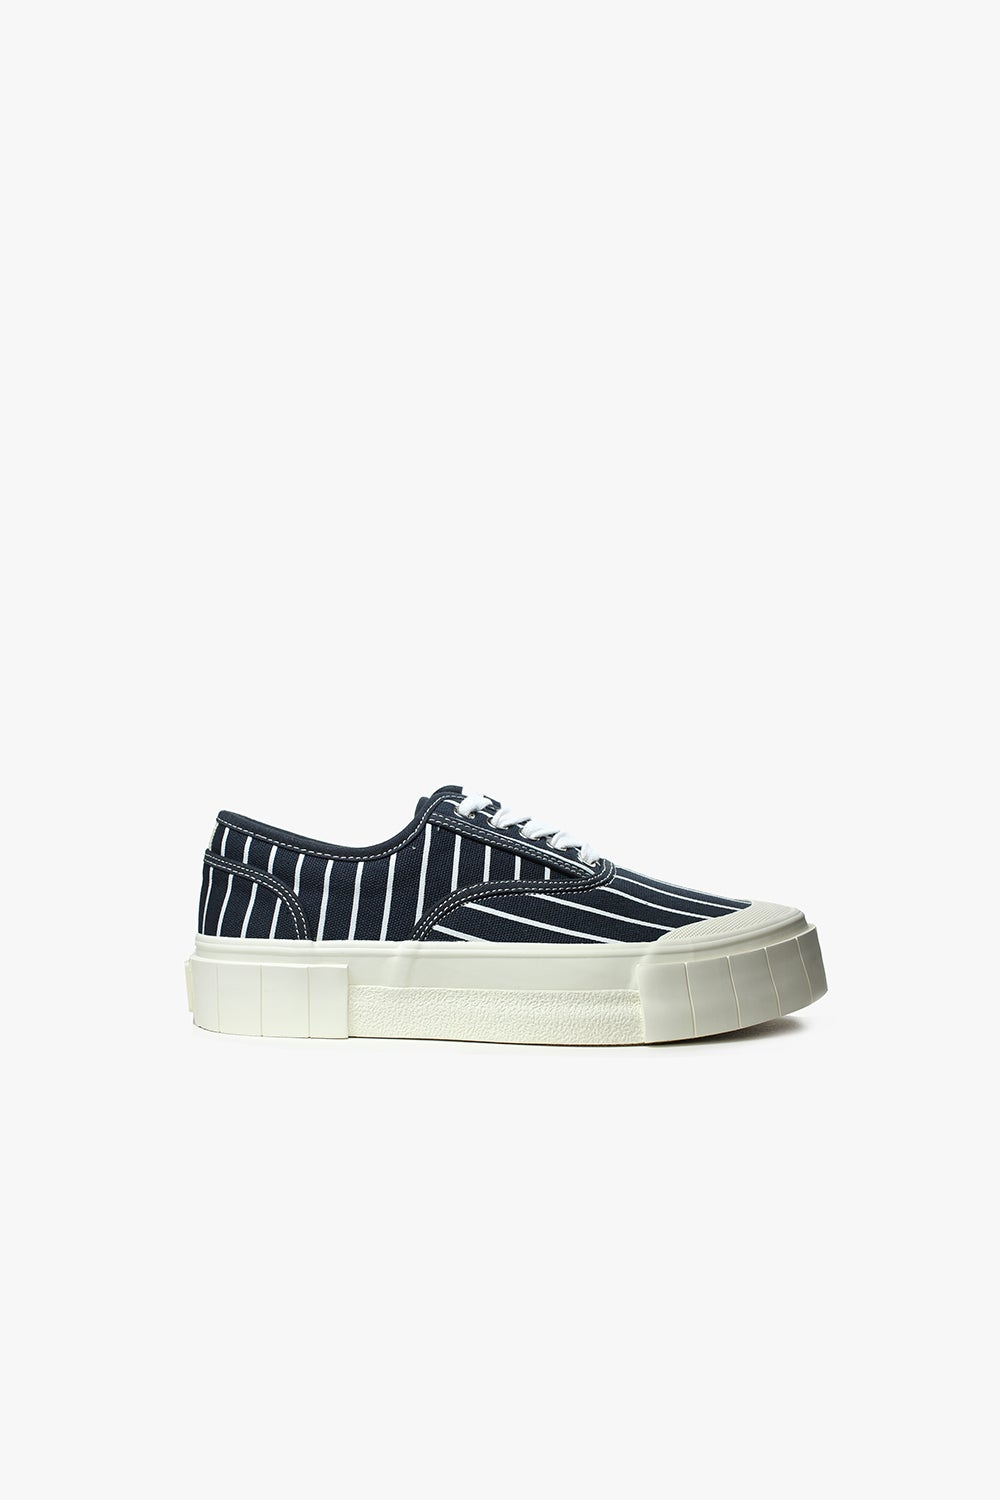 Good News Hurler 2 Low Navy